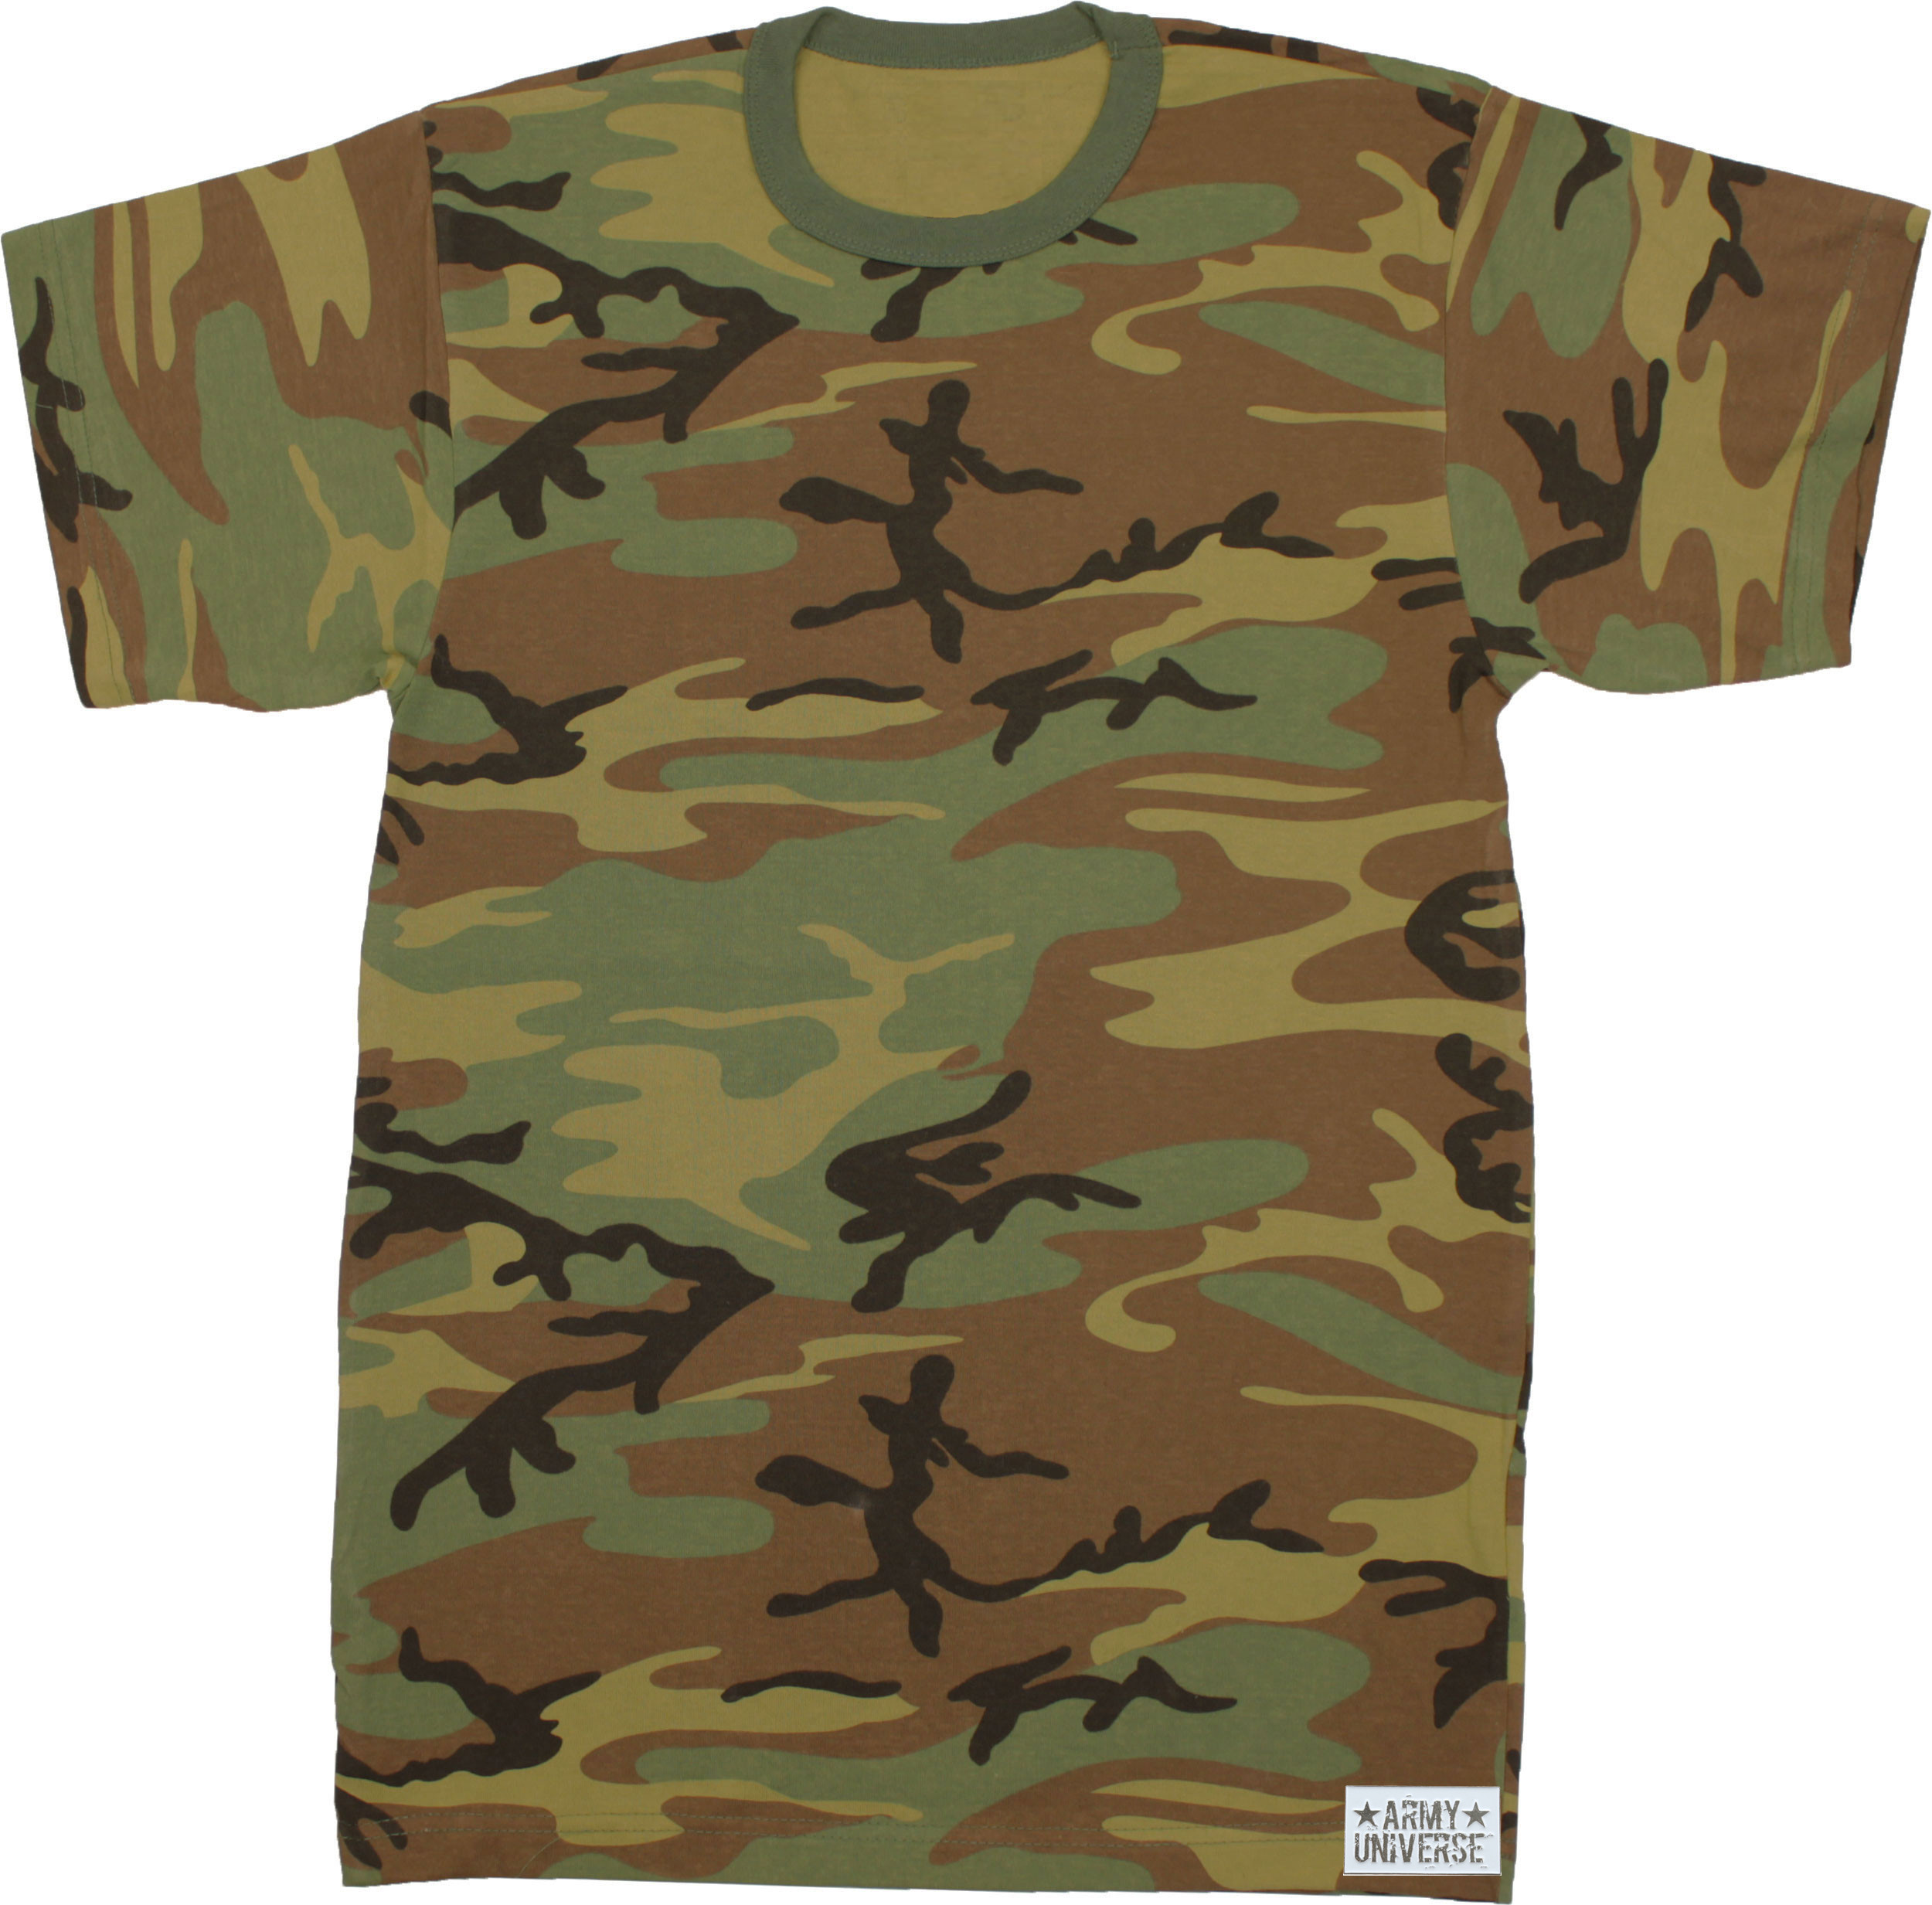 Camouflage military crewneck short sleeve t shirt w for Camouflage t shirt design